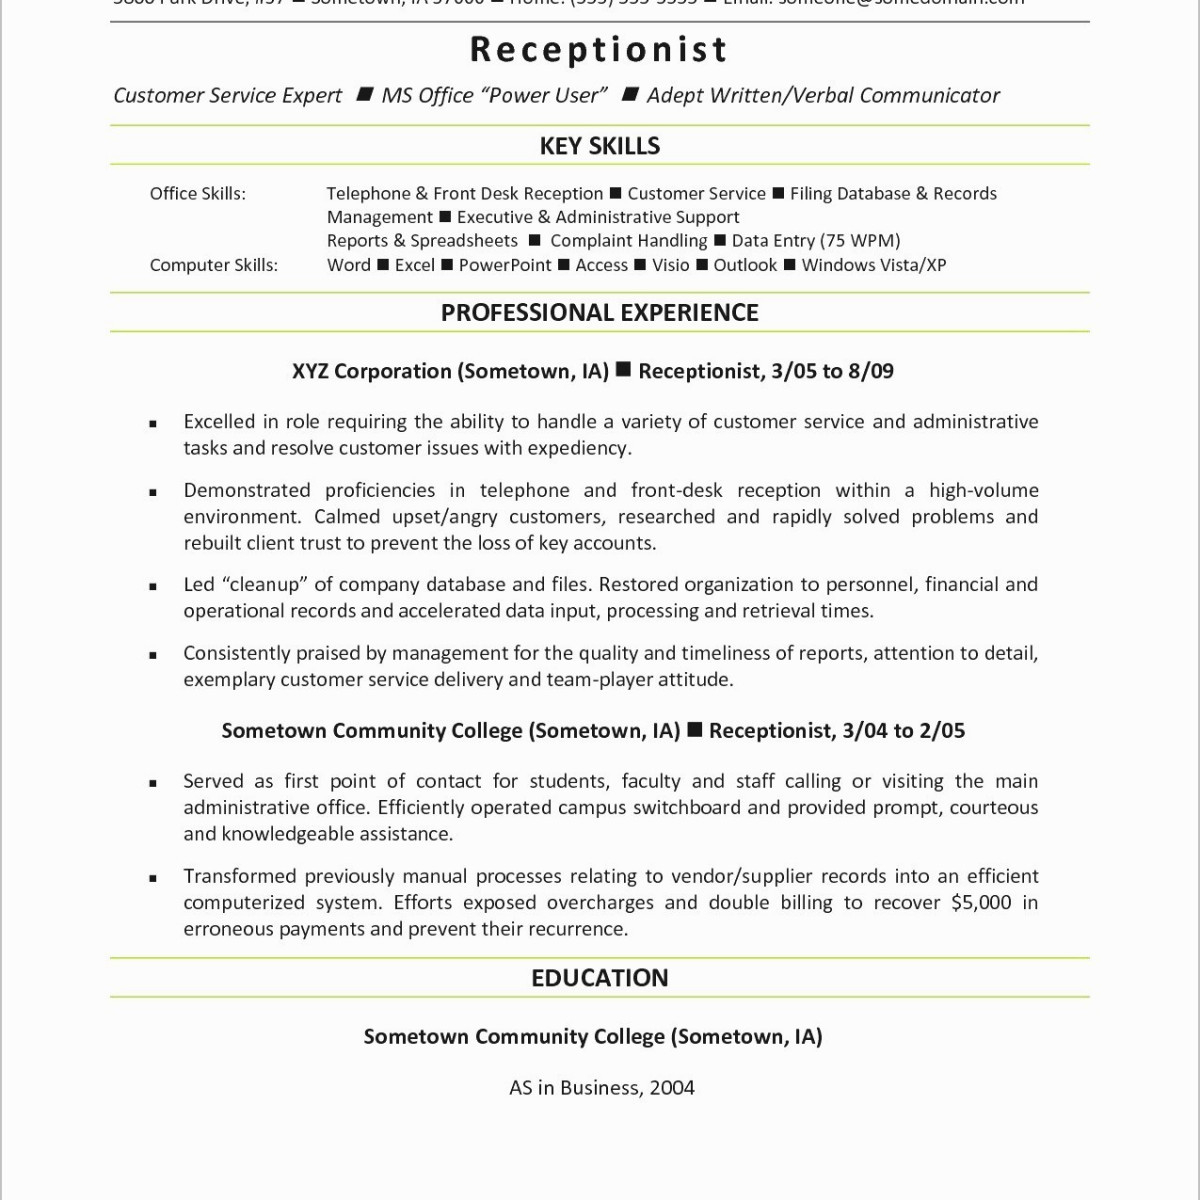 Key Qualifications to Put On A Resume - 31 Charming Career Focus Resume R3s